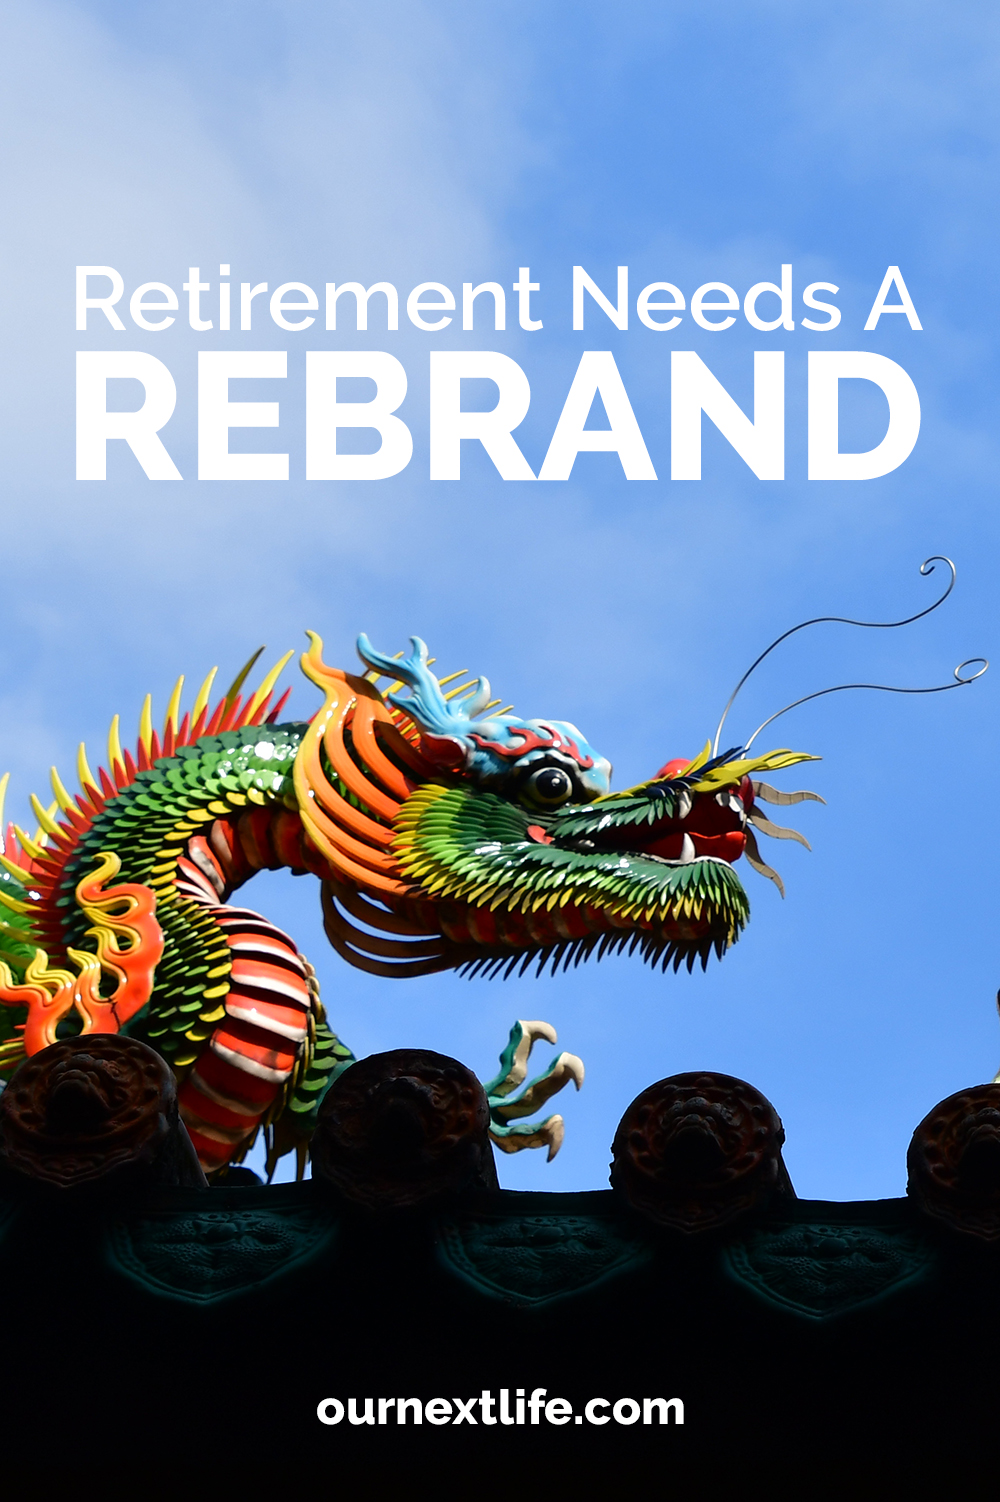 Retirement needs a rebrand // Our Next Life // early retirement, financial independence, happiness, adventure